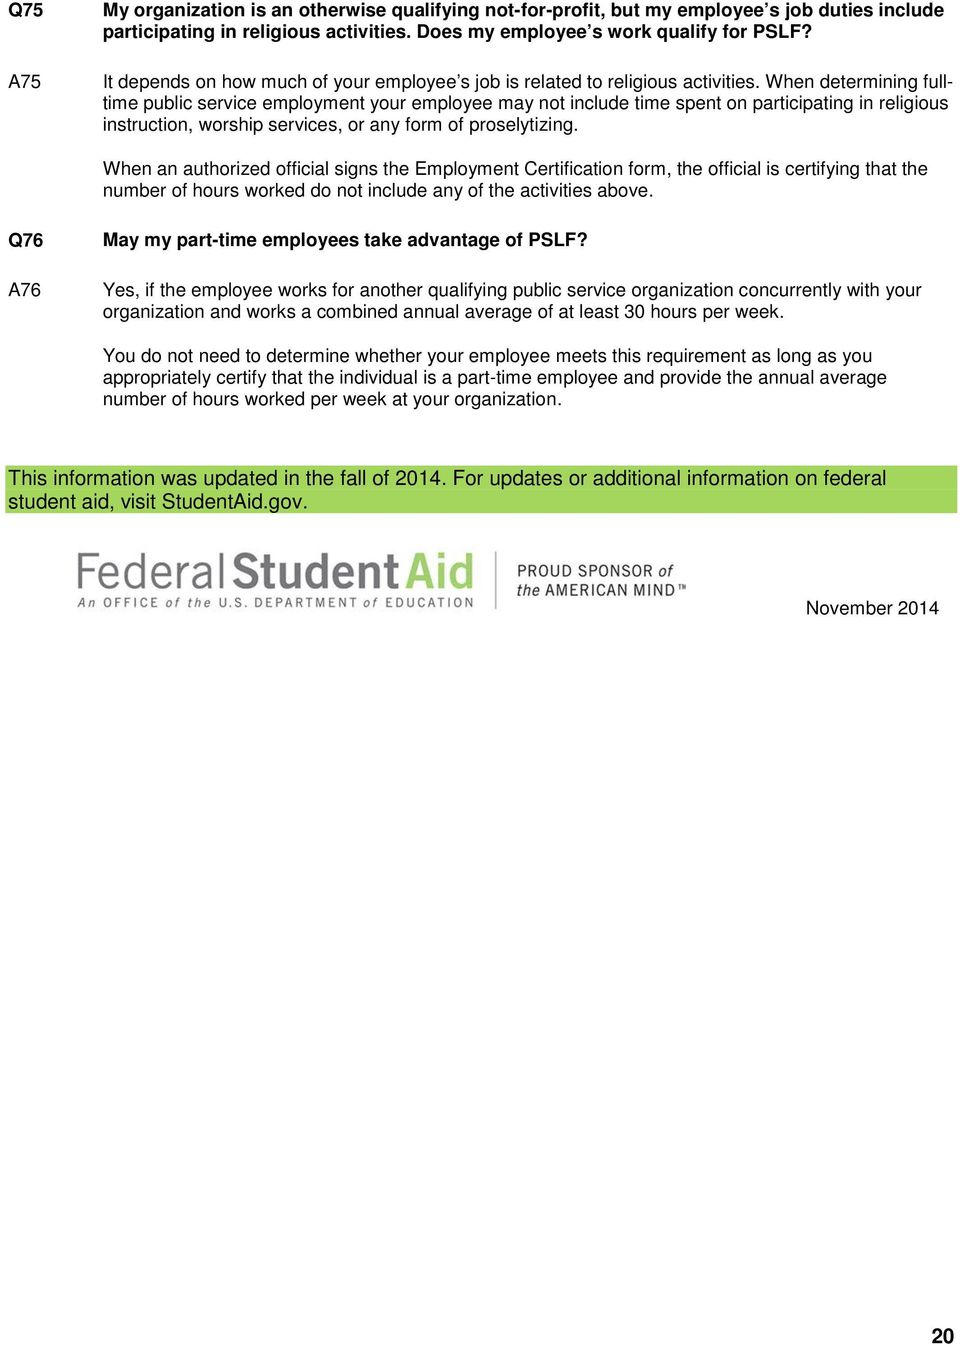 Federal Student Aid Public Service Loan Forgiveness Program Pdf